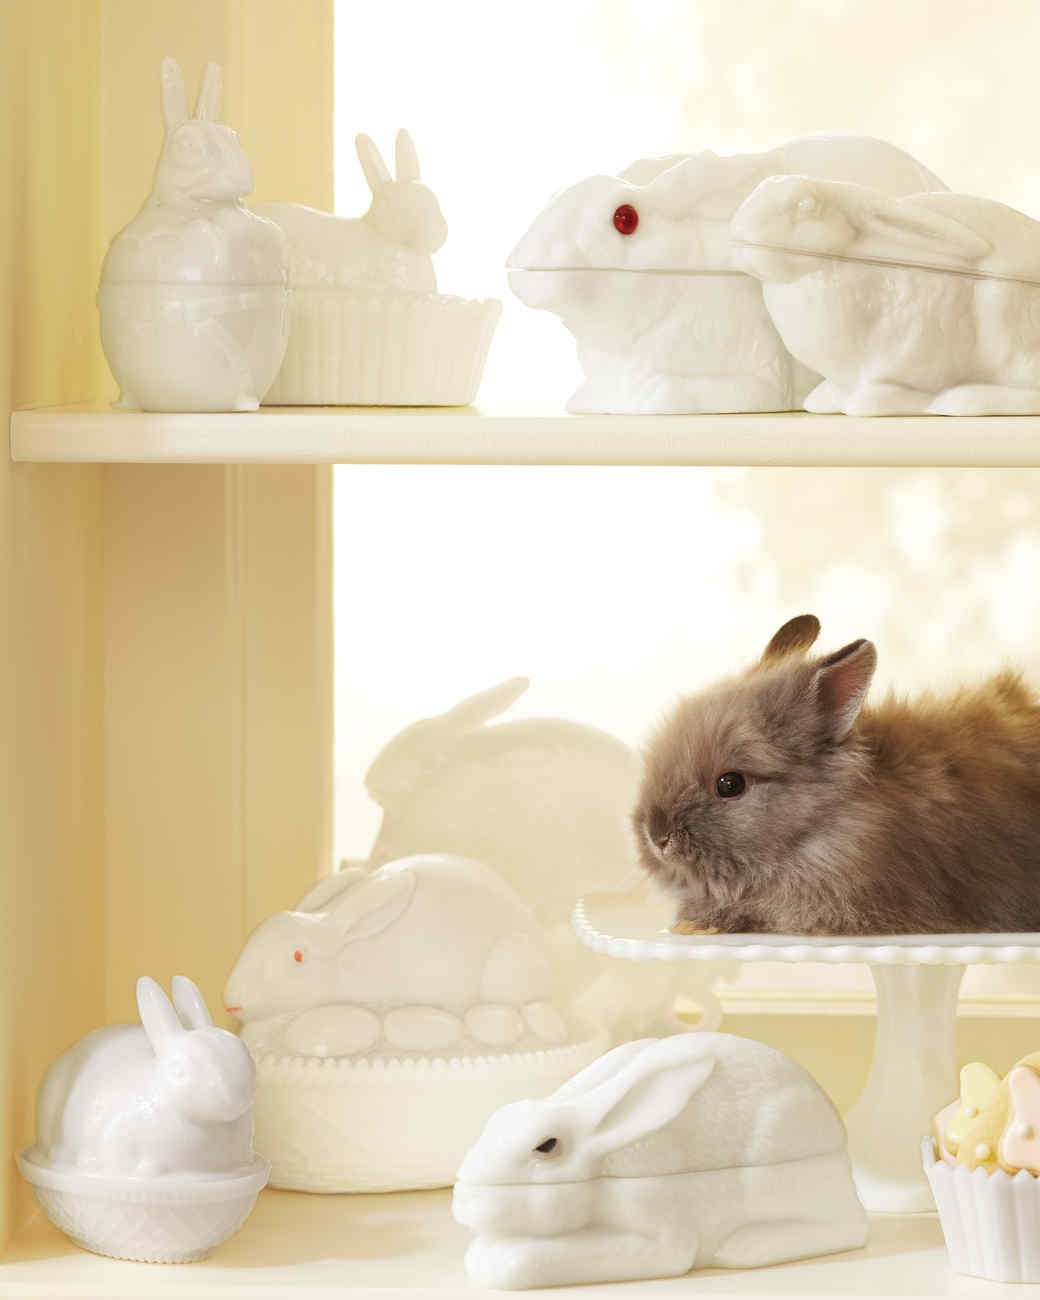 mld106987_0411_bunnies_milkglass.jpg